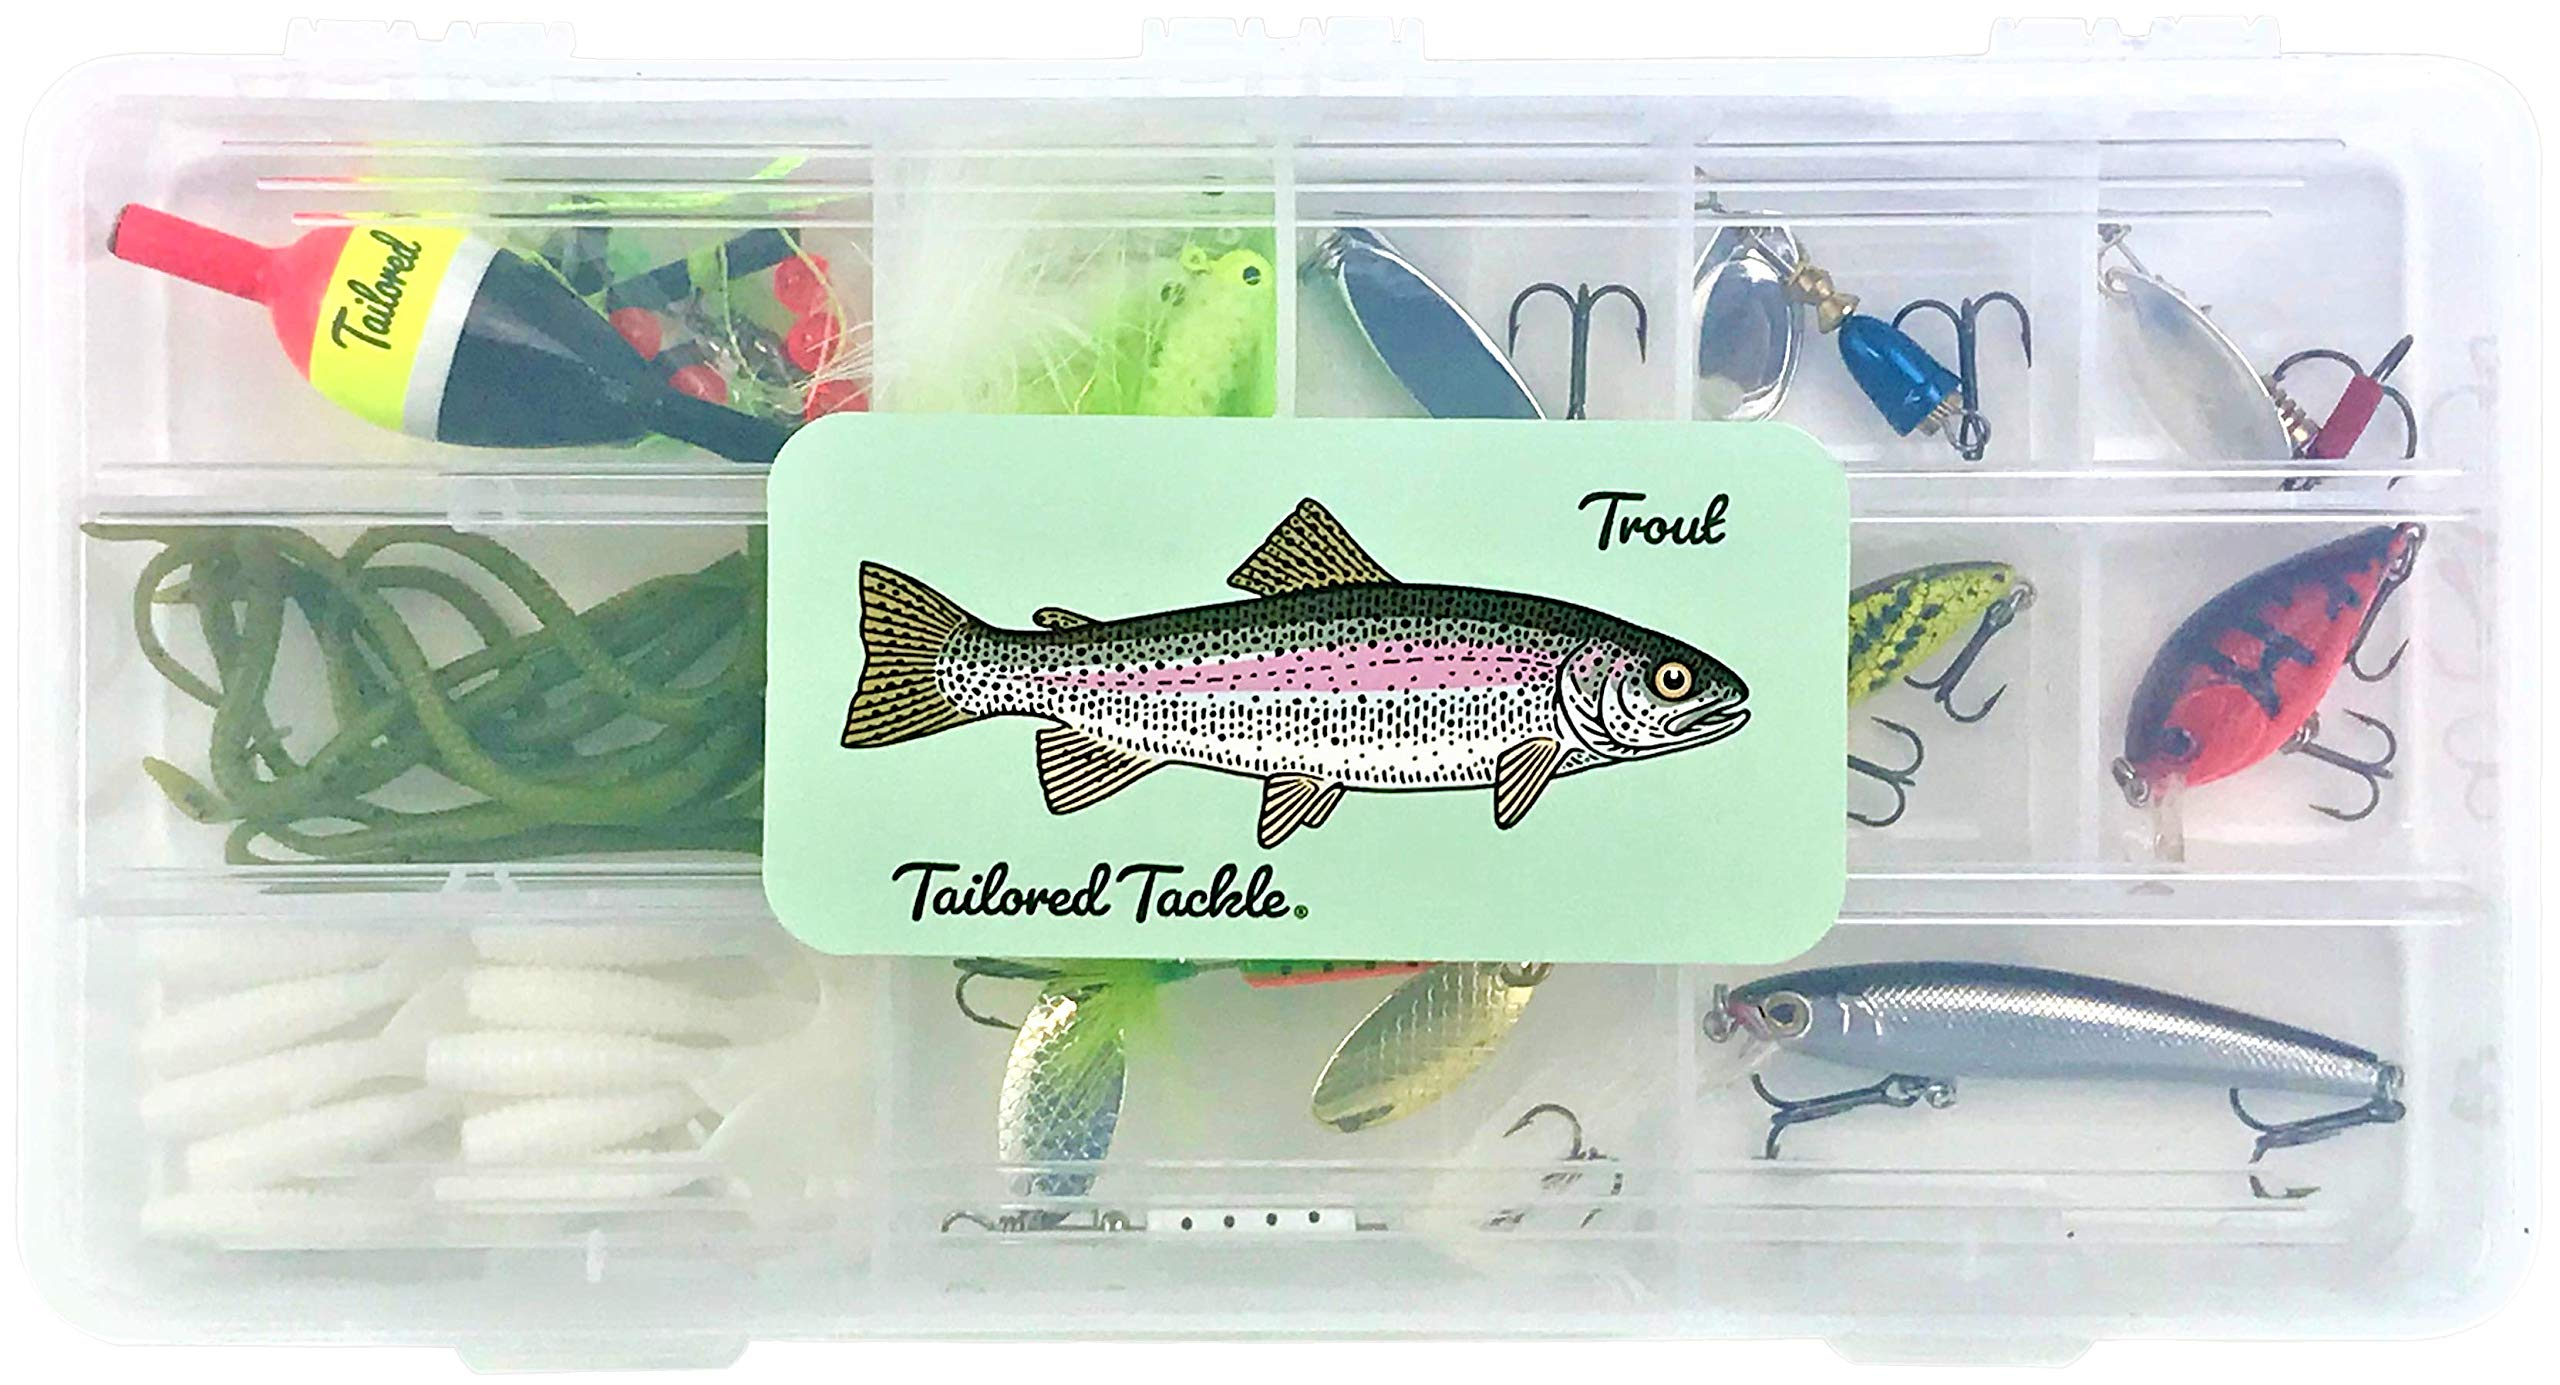 Tailored Tackle Trout Fishing Kit 98 pcs. Gear Set Lures Spinners Jerkbait Crankbait Worms Jigs Hooks Sinkers Float by Tailored Tackle